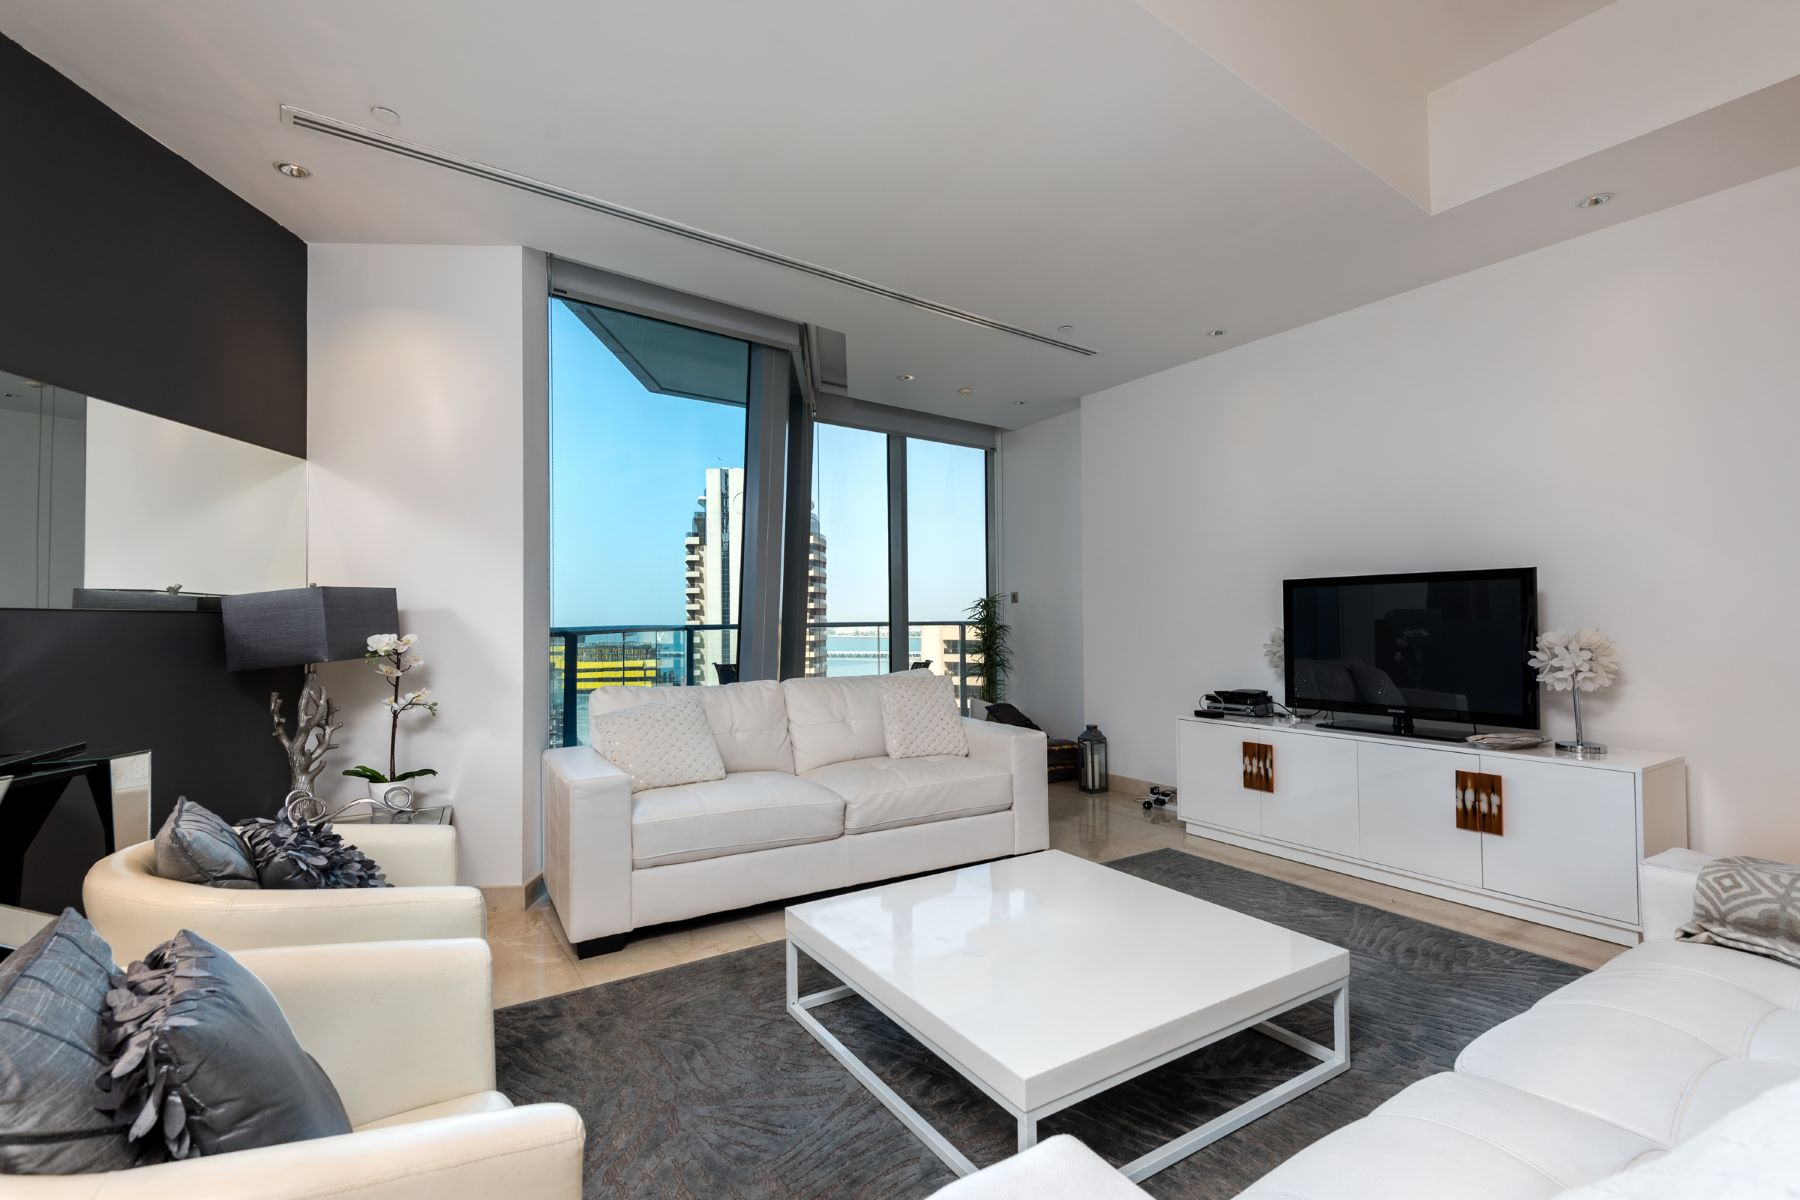 Amazing 2 Bedroom in Trident Grand Residence Dubai Marina, Trident Grant Residence 1105 Dubai, Dubai 00000 United Arab Emirates